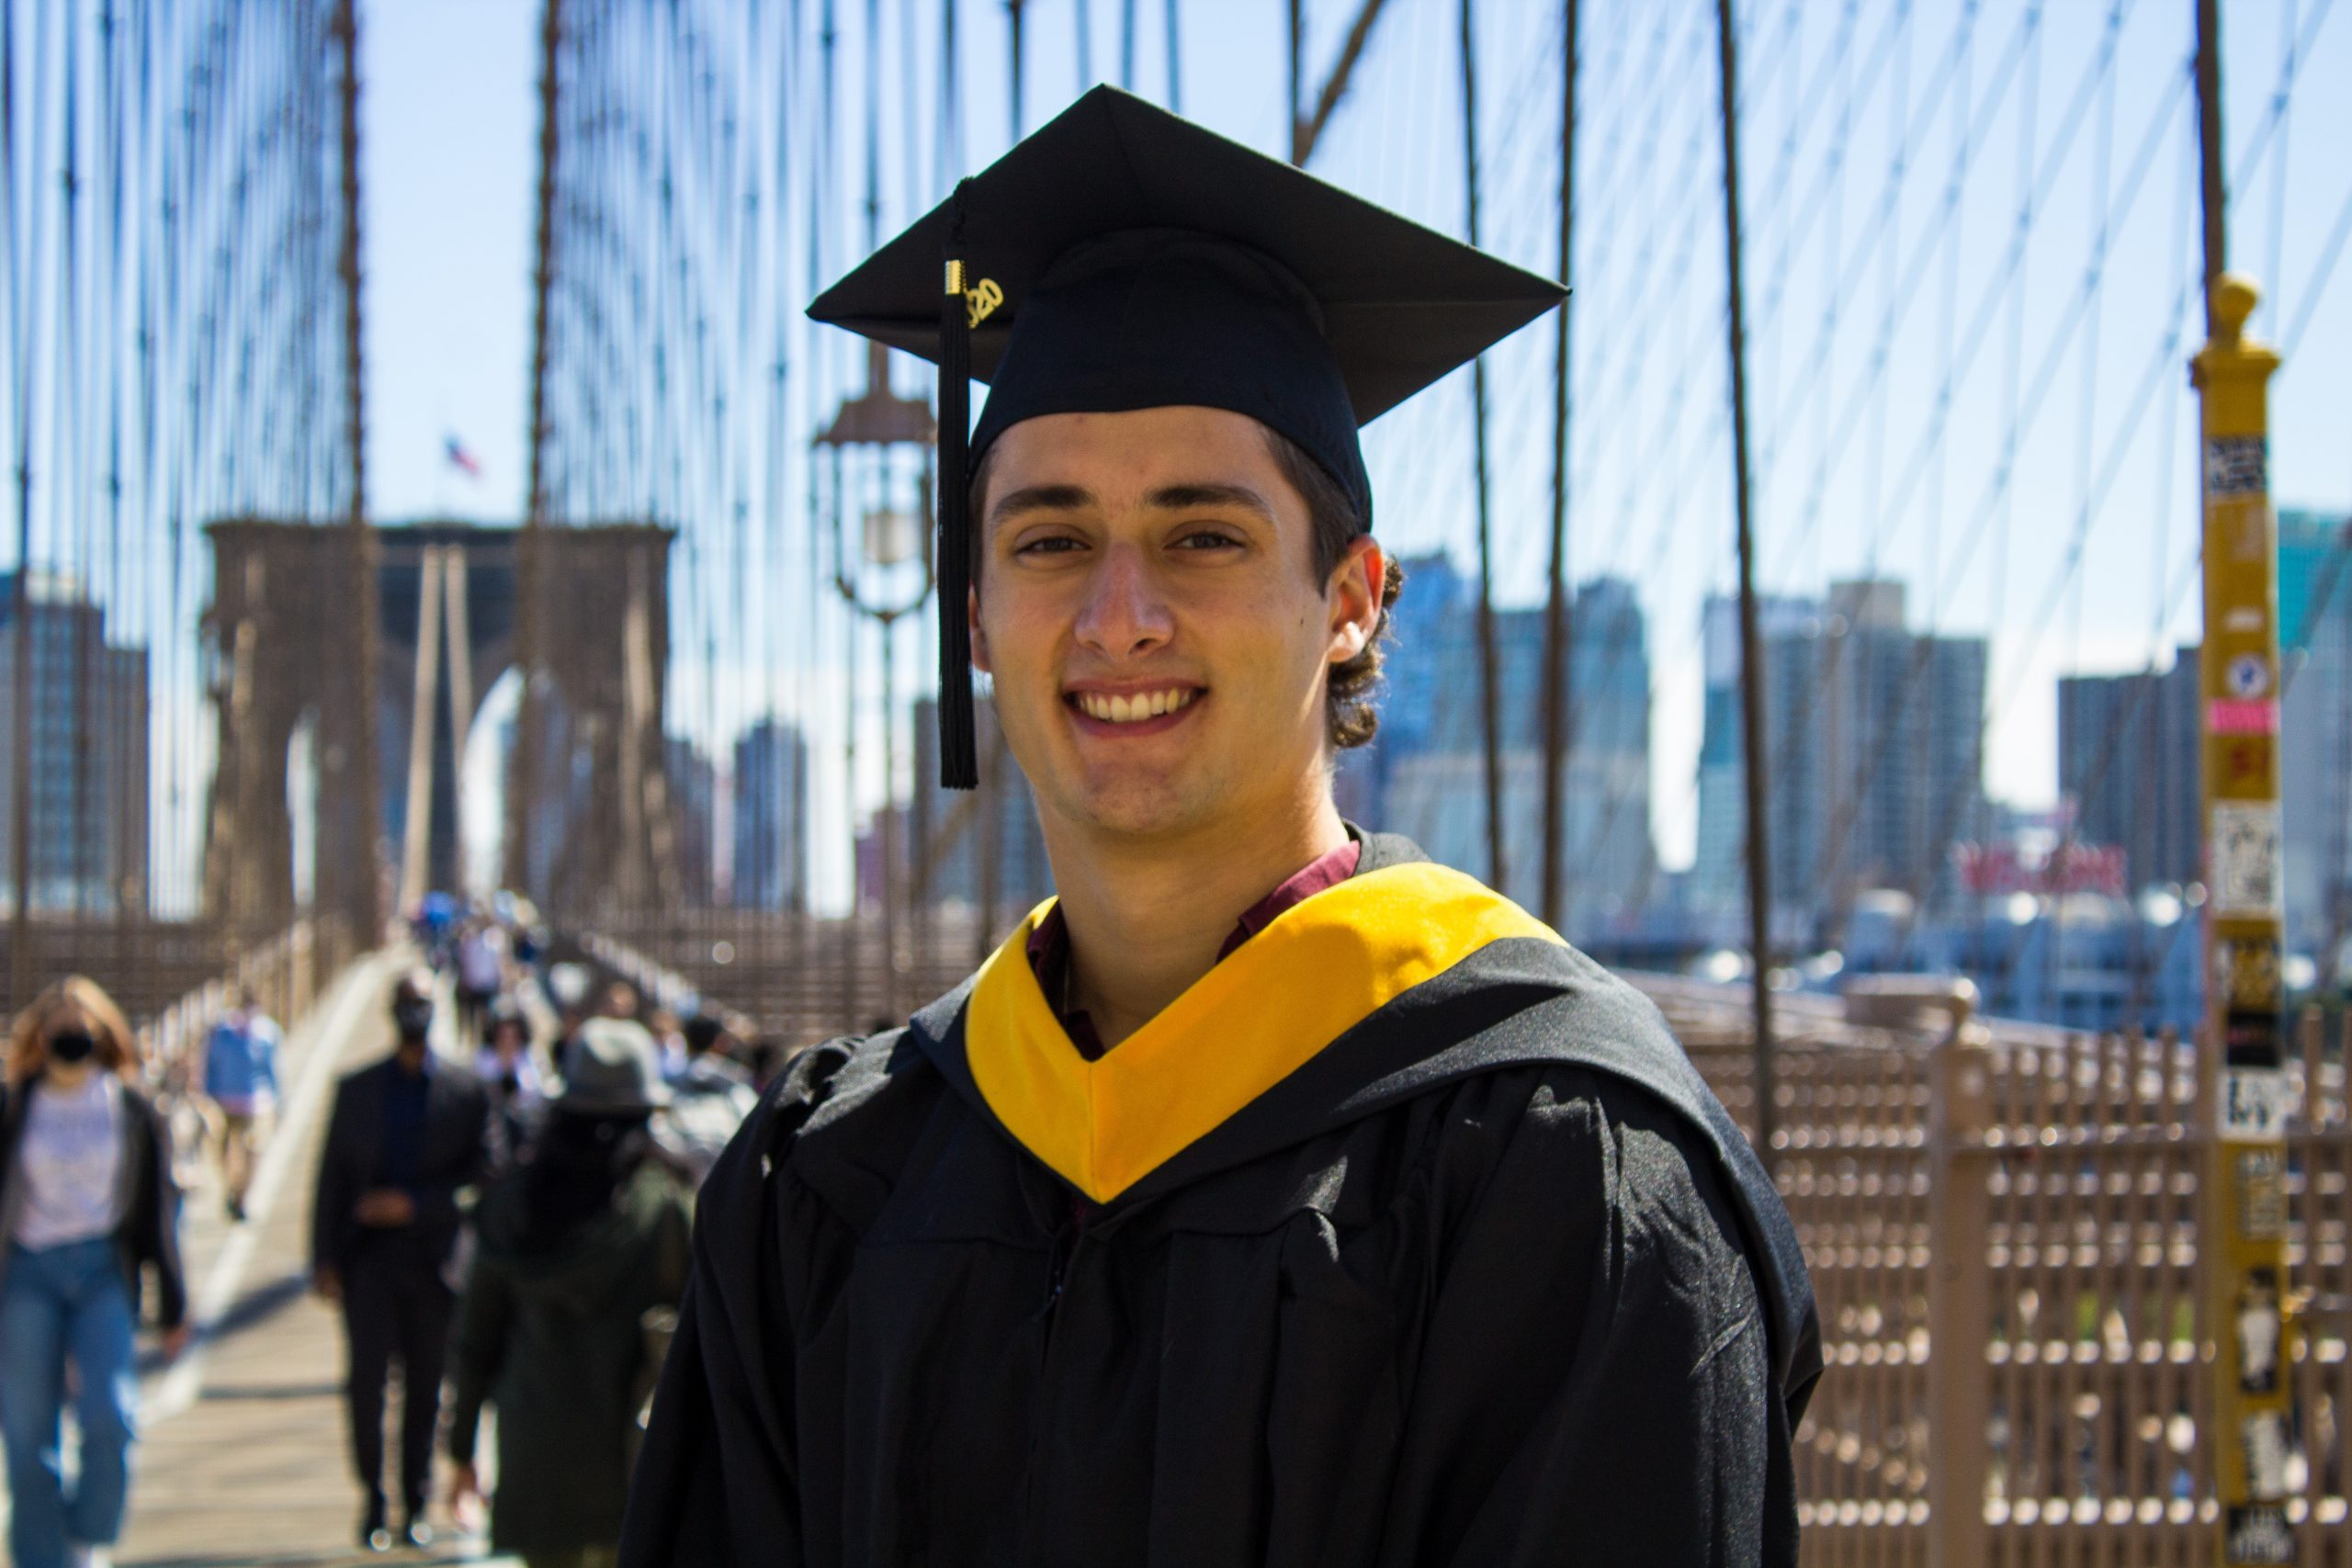 Nic standing on a bridge in cap and gown